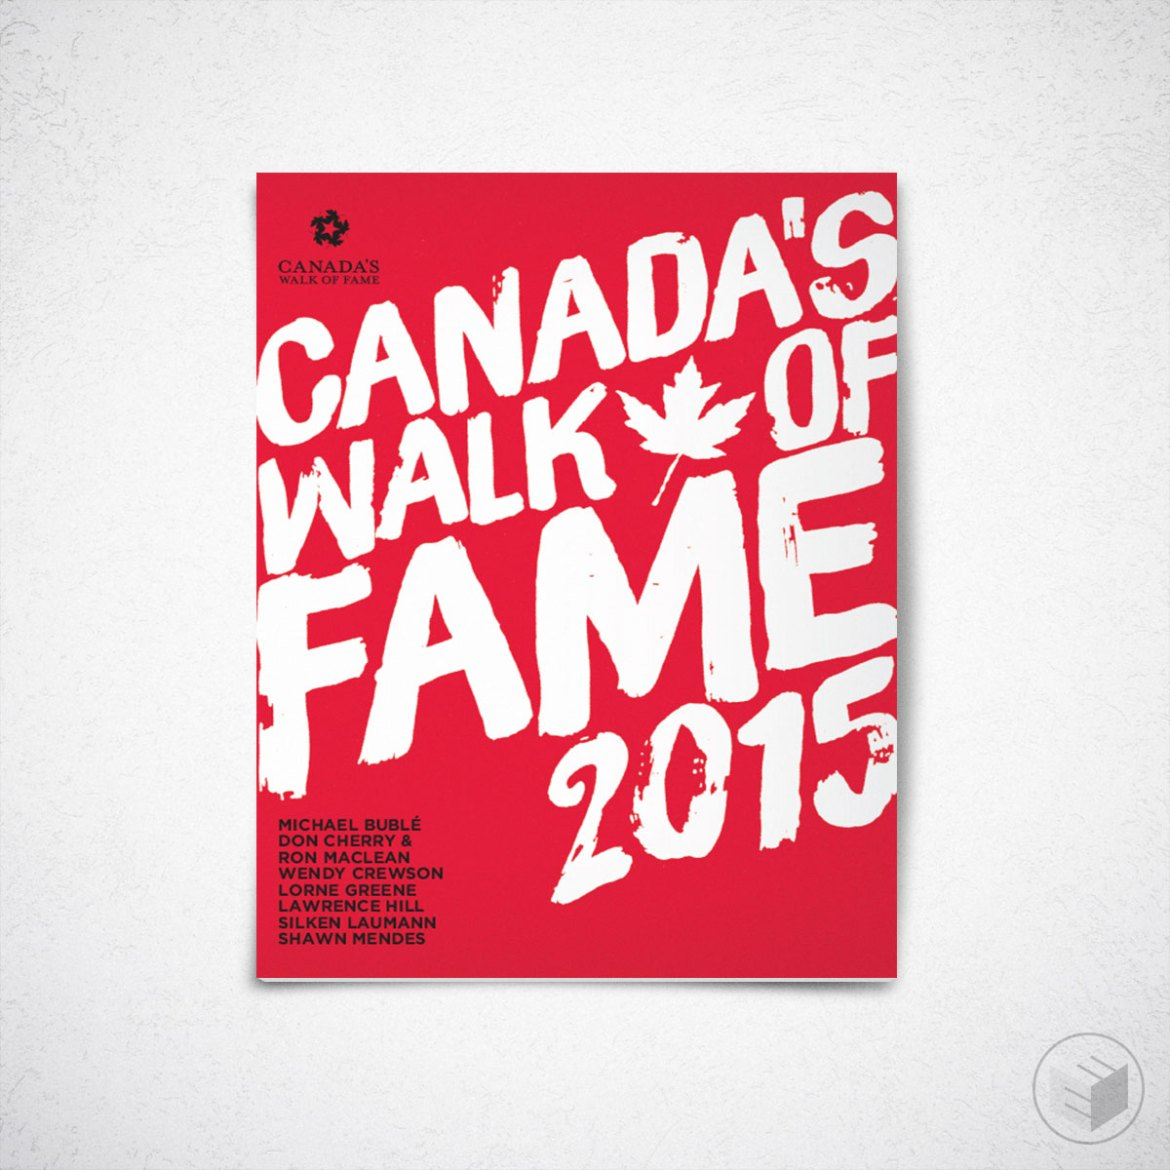 Canada's Walk of Fame 2015